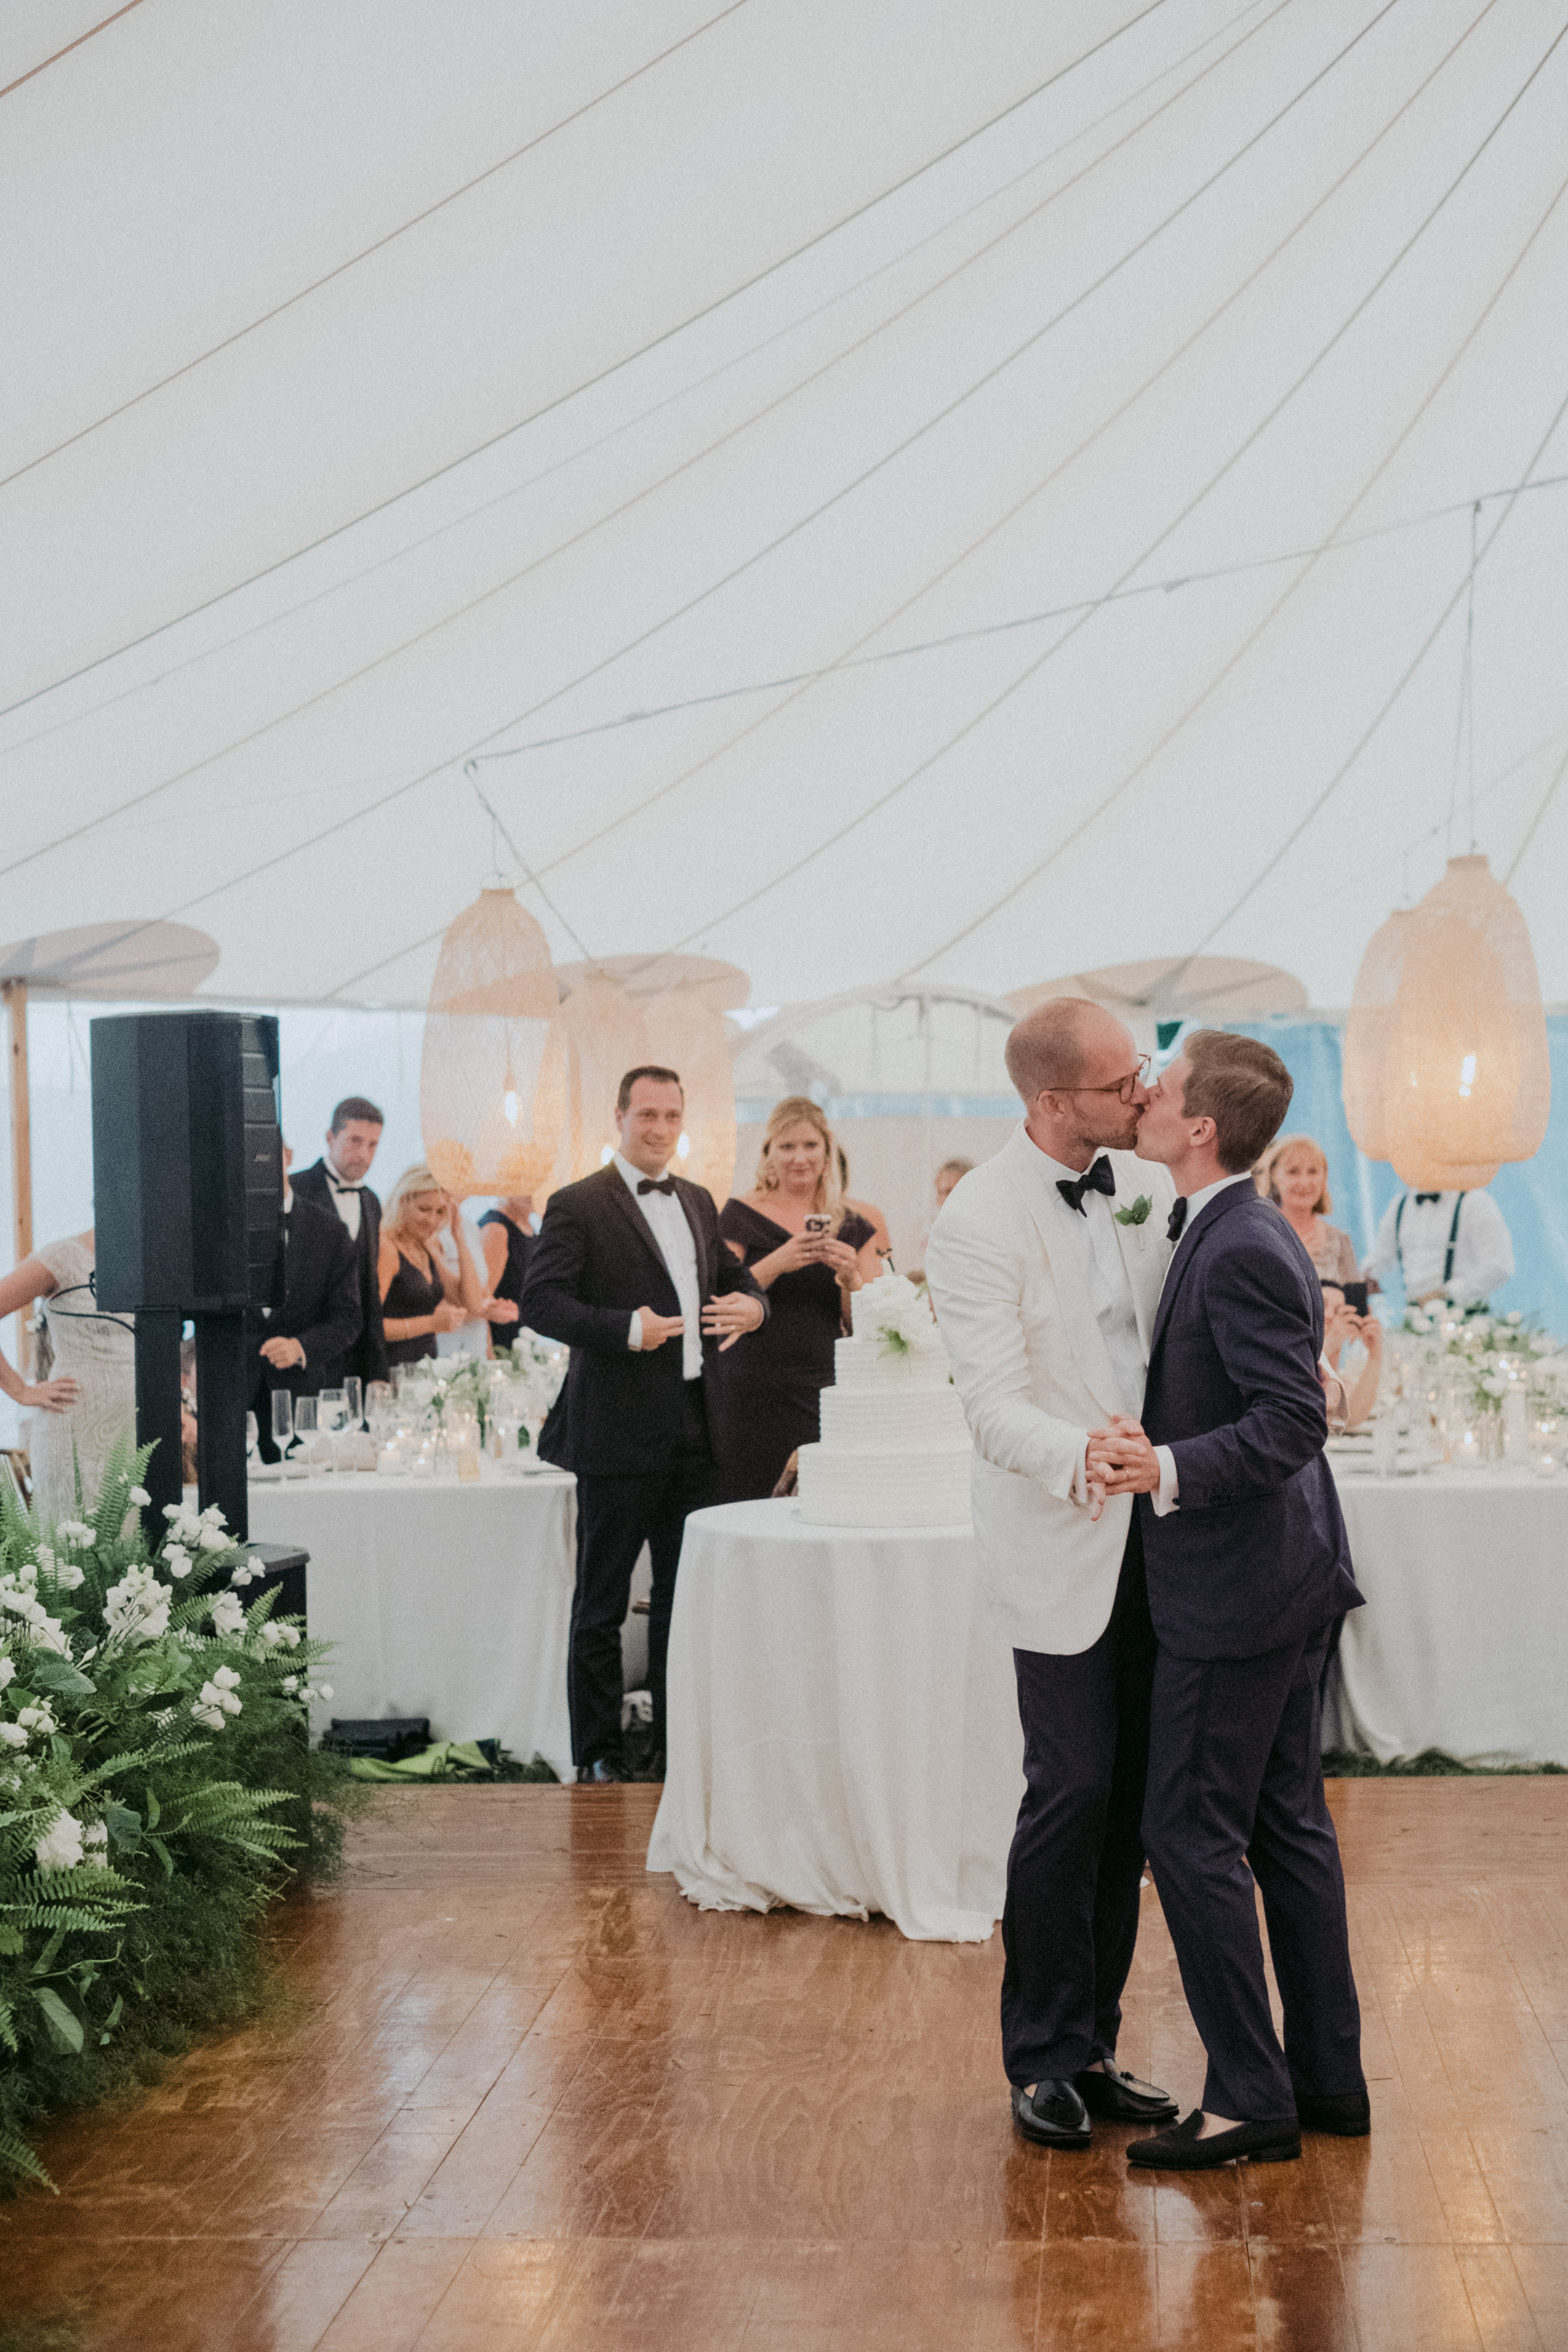 Same Sex Wedding in Provincetown, MA. Destination wedding planned by Nicole Simeral. Coastal Chic Wedding, Travel Wedding, Sperry Sailcloth Tent Wedding, bamboo folding chairs, Belfast linen, whites and greens , straw lantern, symmetry , first dance, wedding kiss